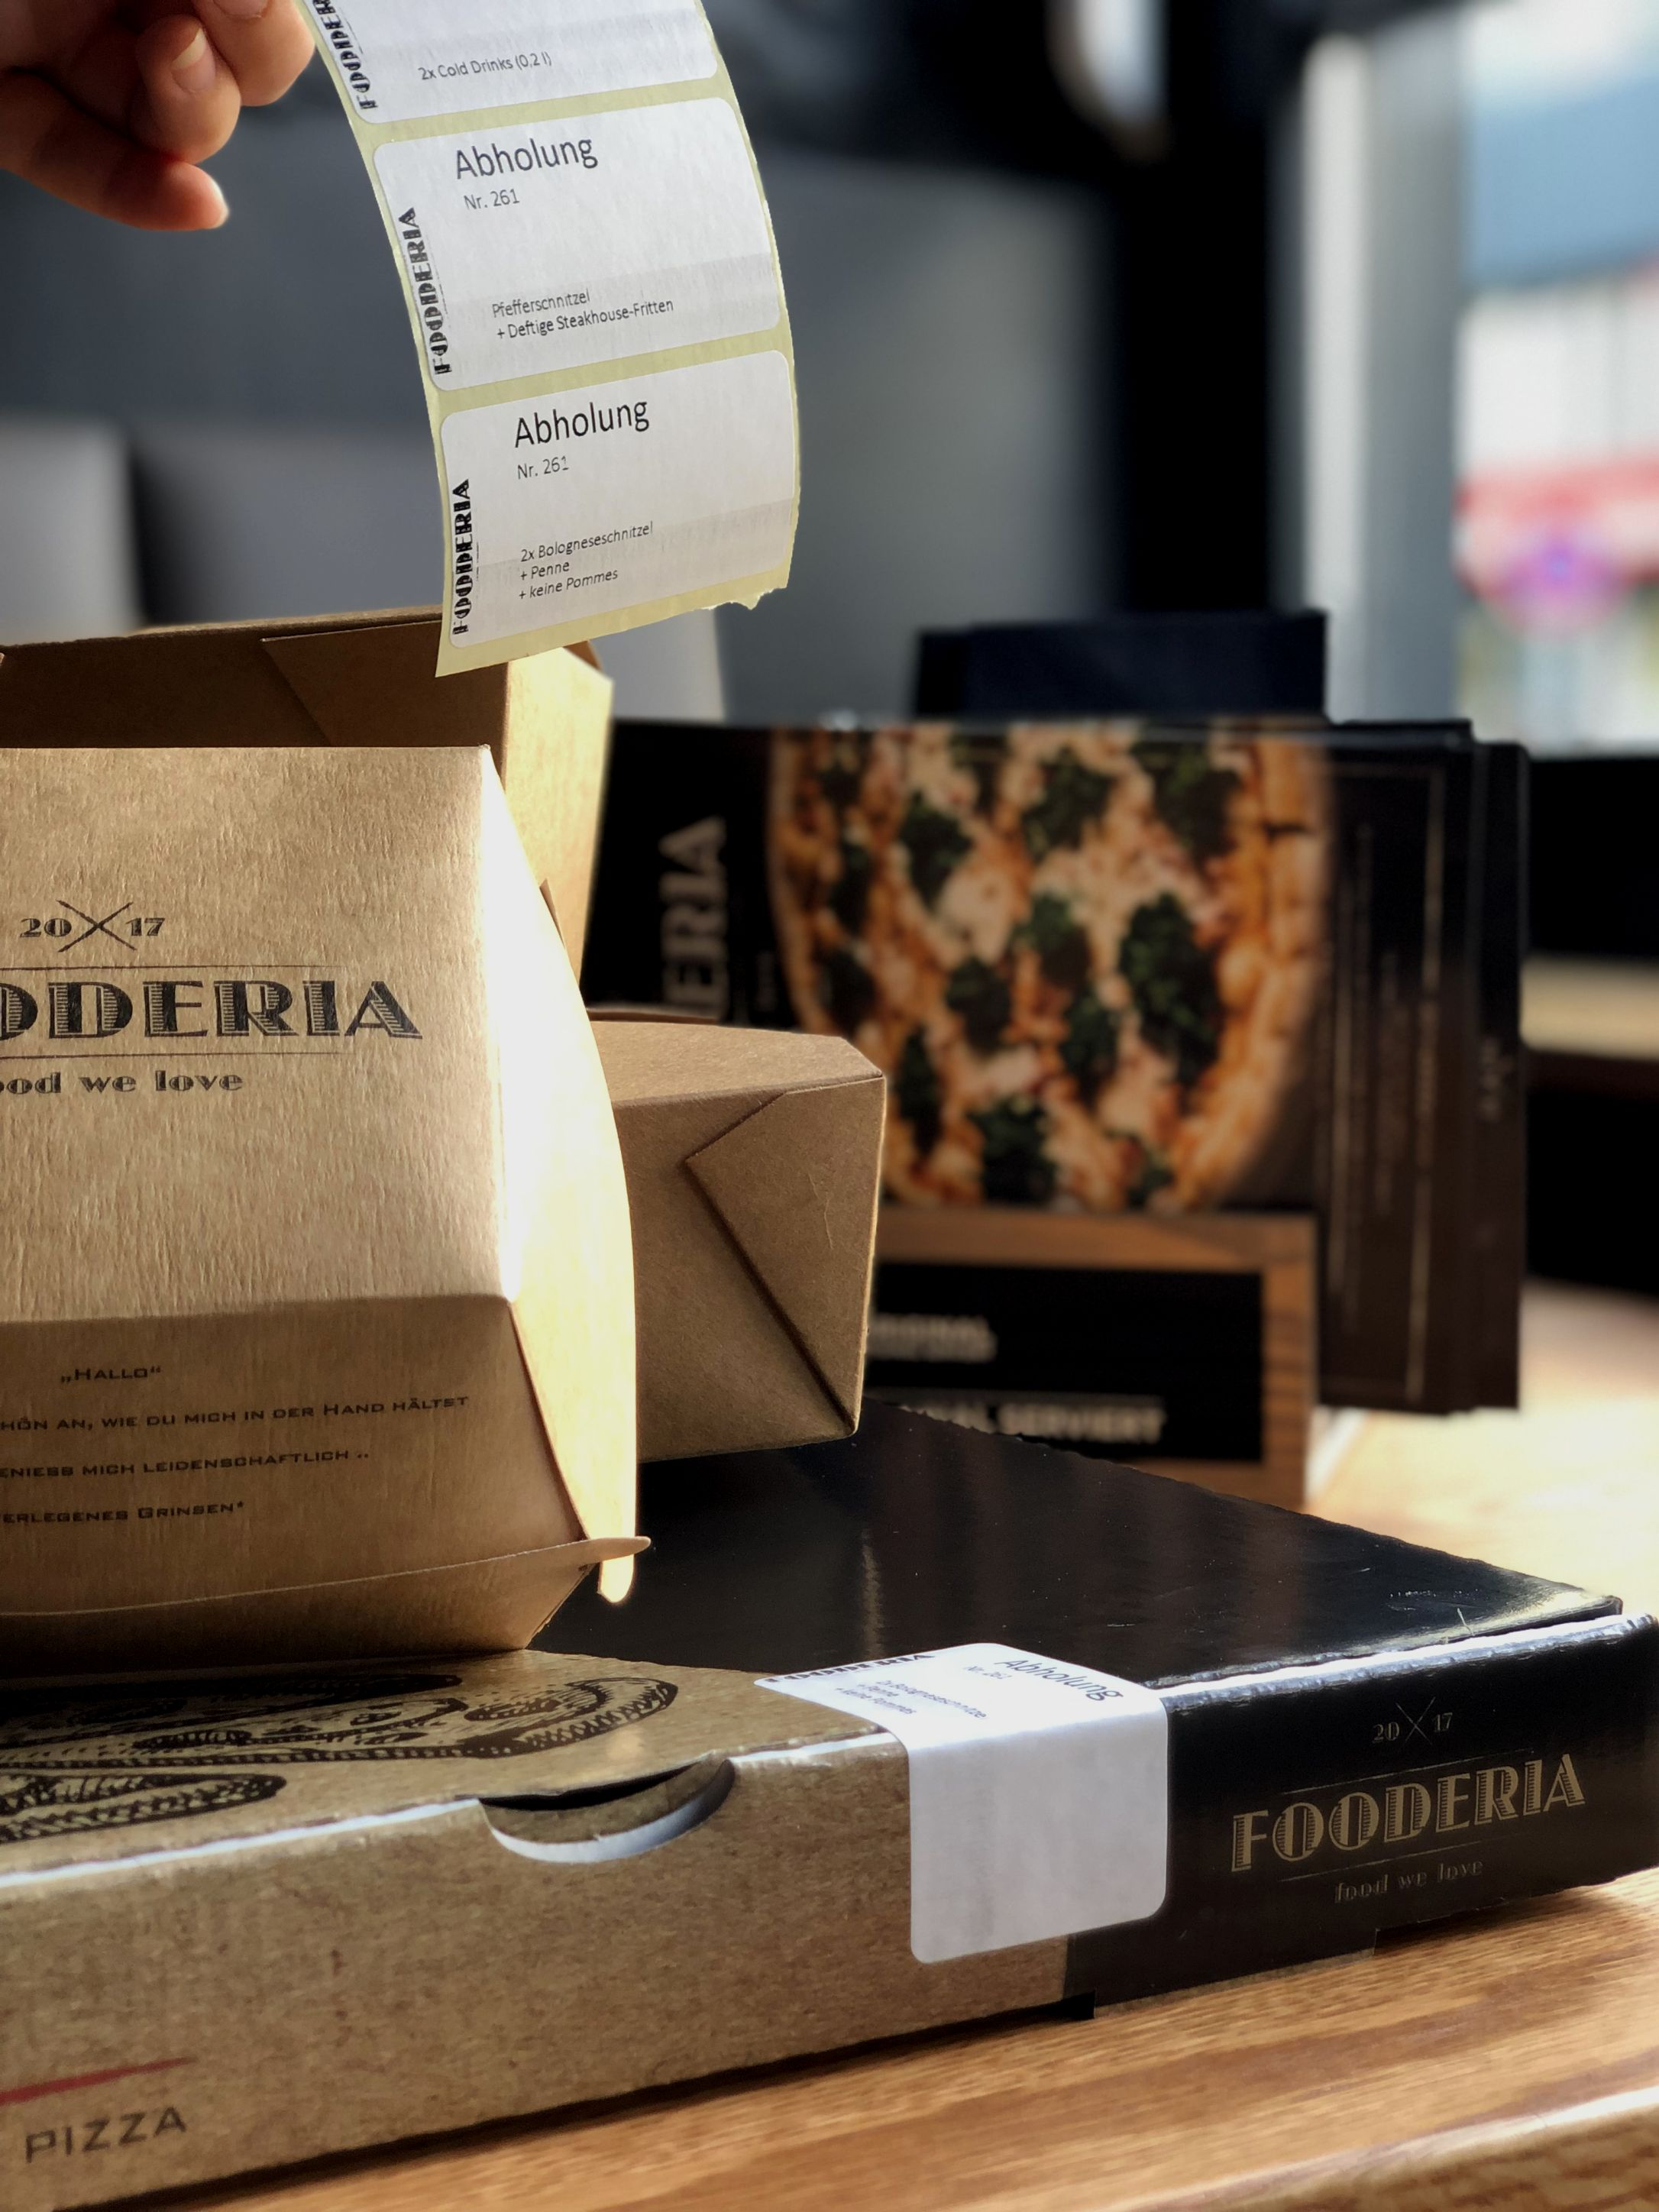 Fooderia - food we love